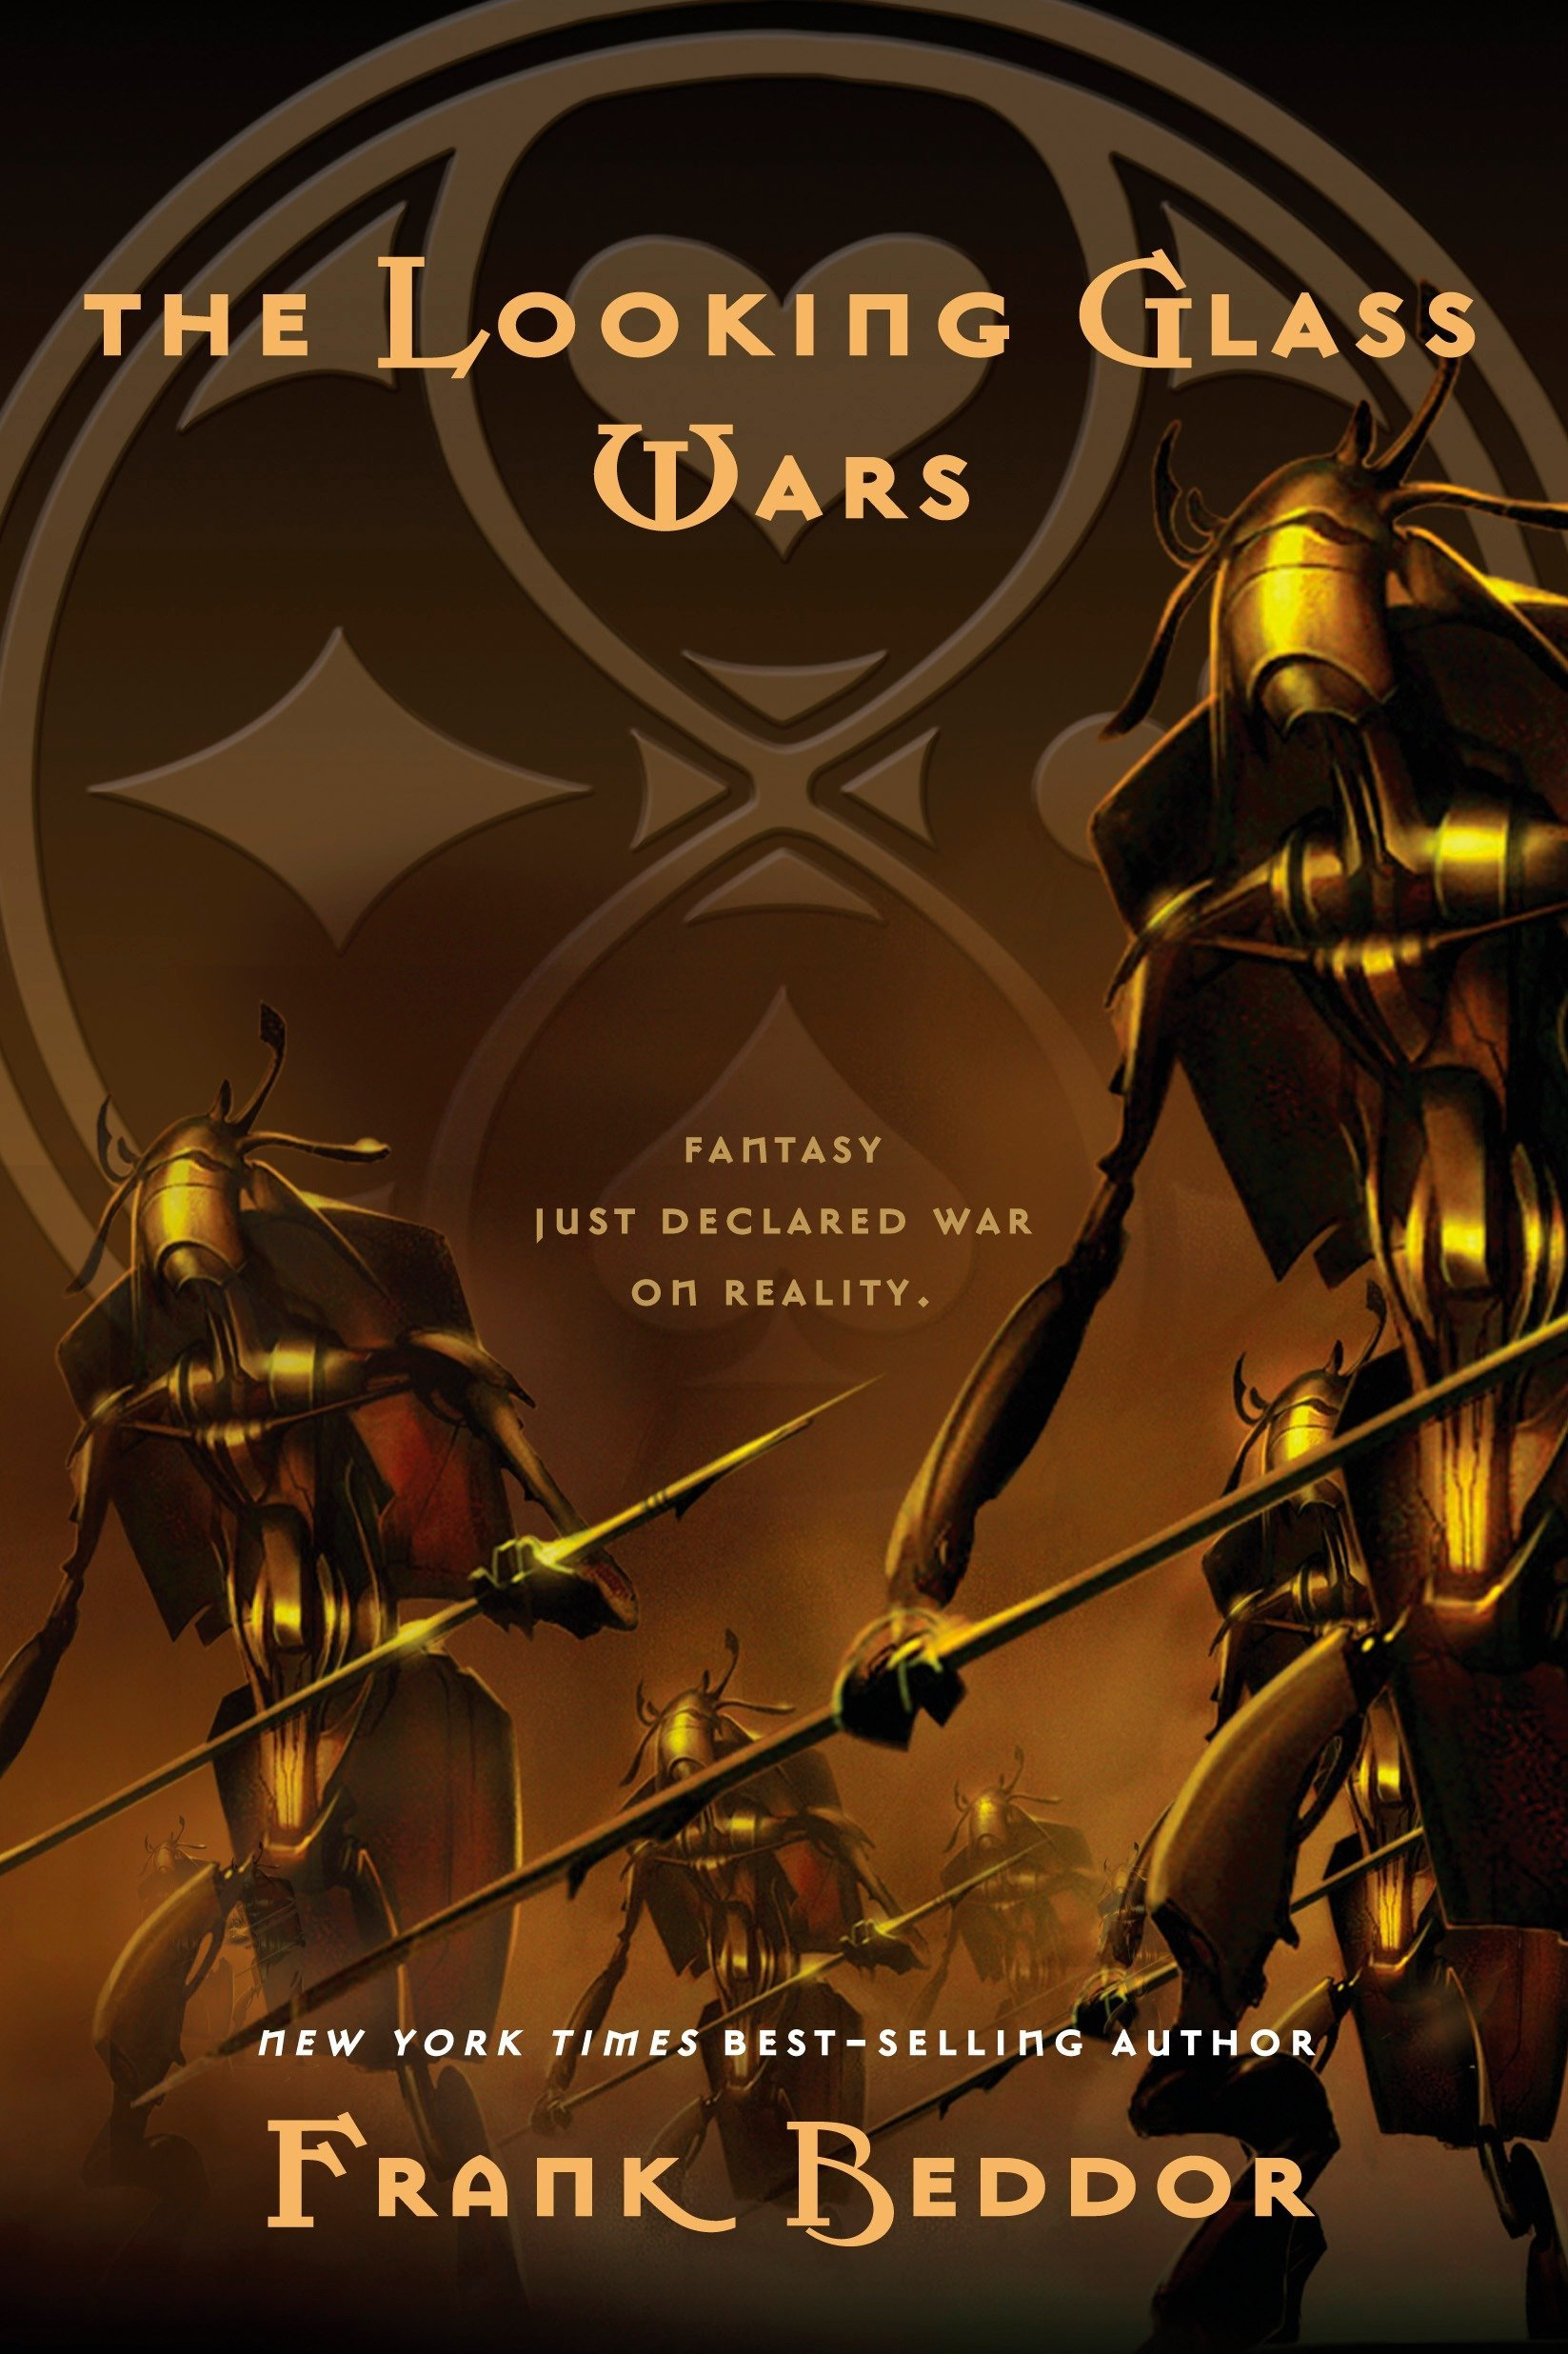 cover art for The Looking Glass Wars